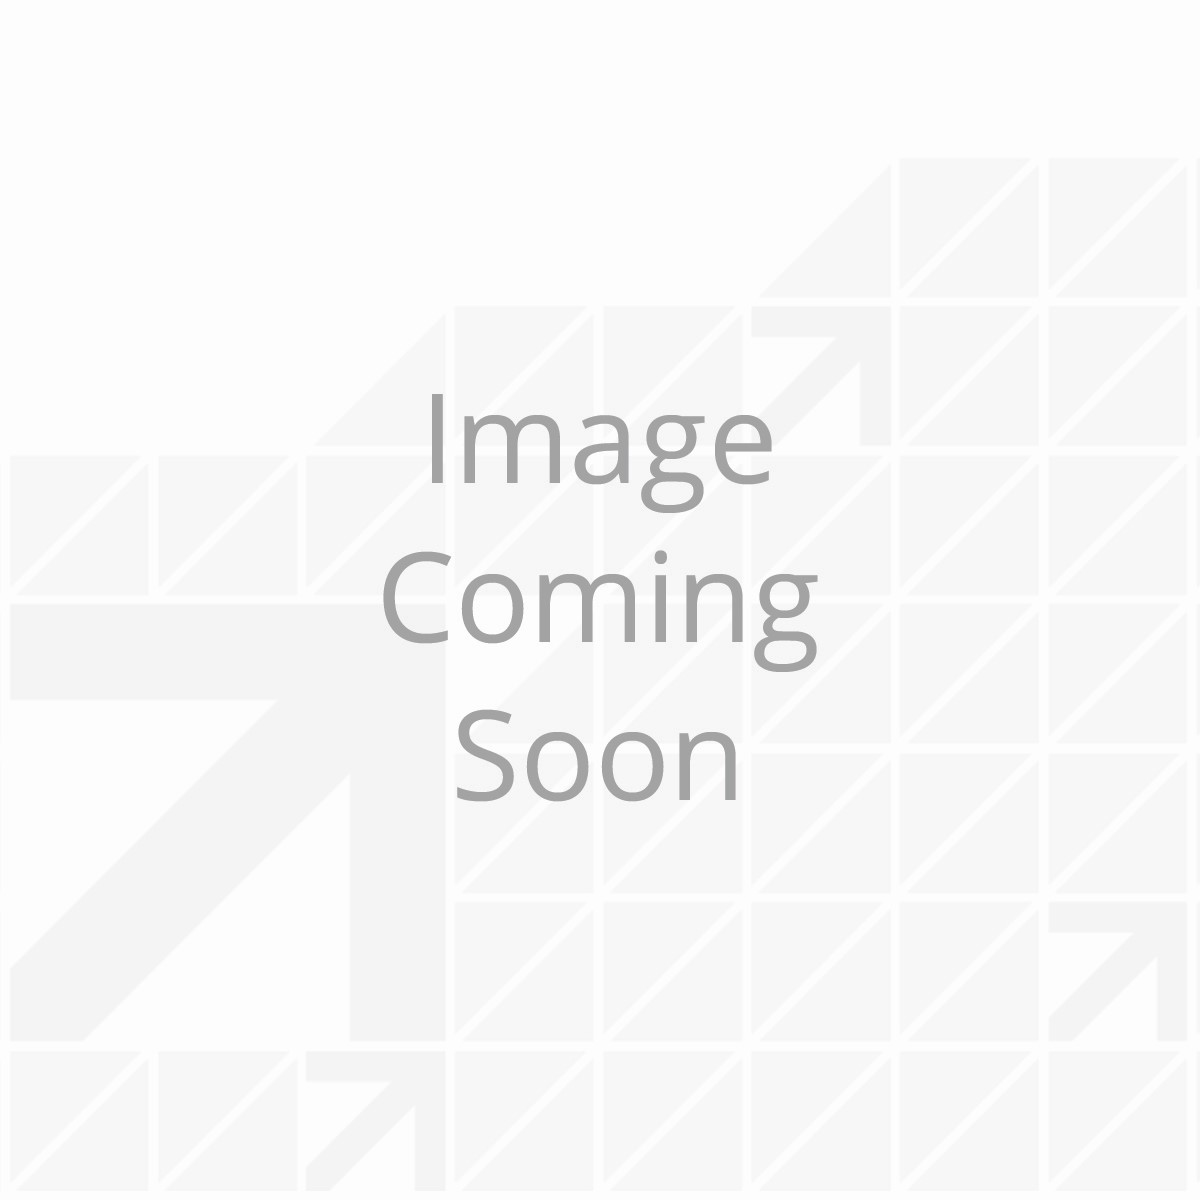 Floë Induratec 636: 12V DC Integrated Drain Down System